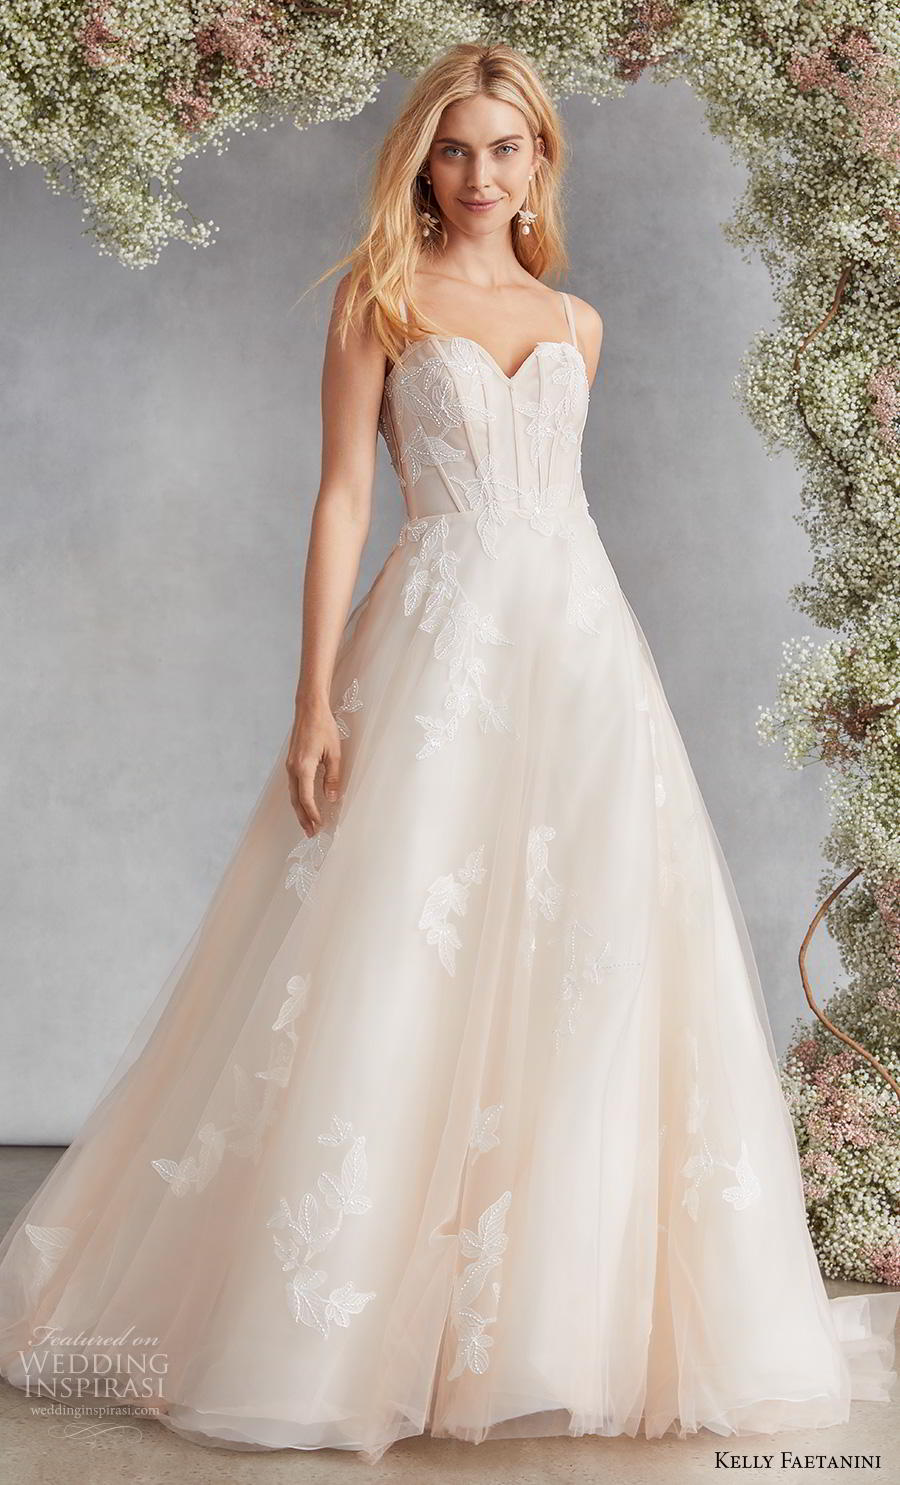 kelly faetanini fall 2020 bridal sleeveless spaghetti strap sweetheart neckline light embellishment romantic a  line wedding dress mid back medium train (1) mv